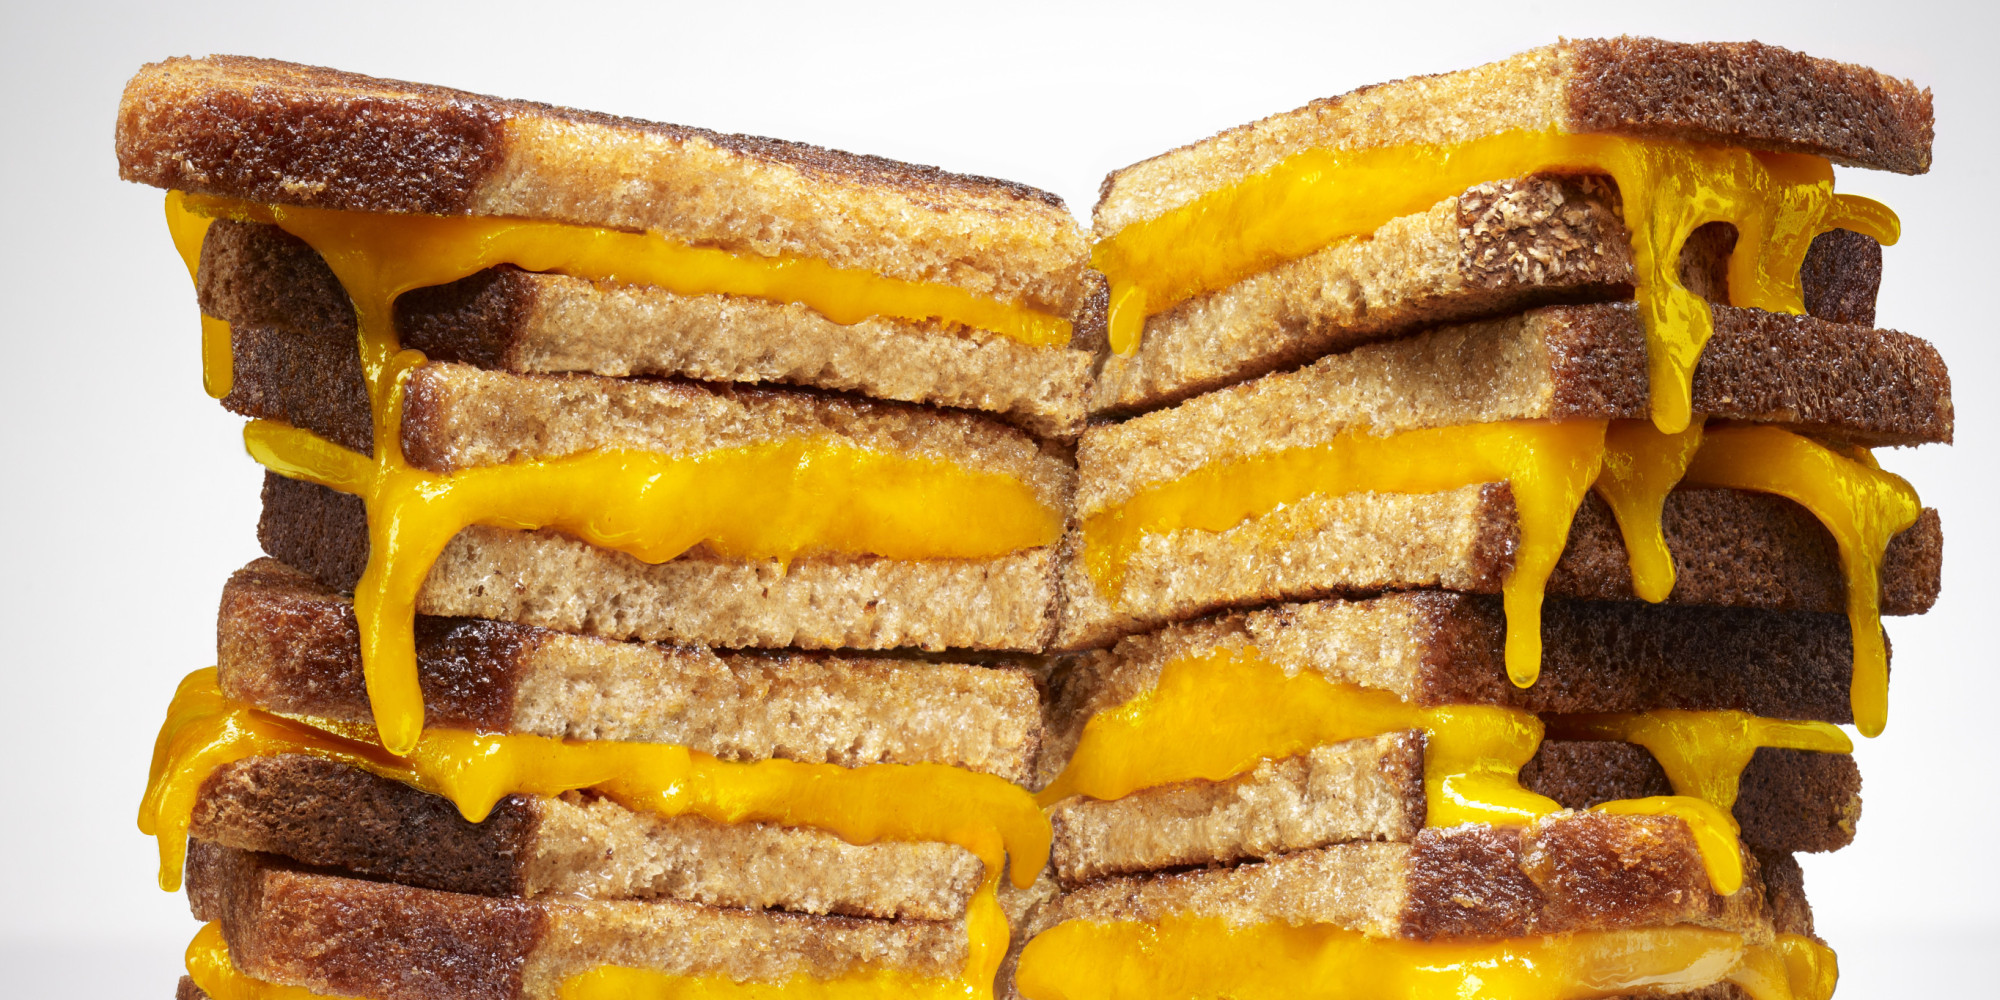 How To Make 10 (Or More) Grilled Cheese Sandwiches At Once ...